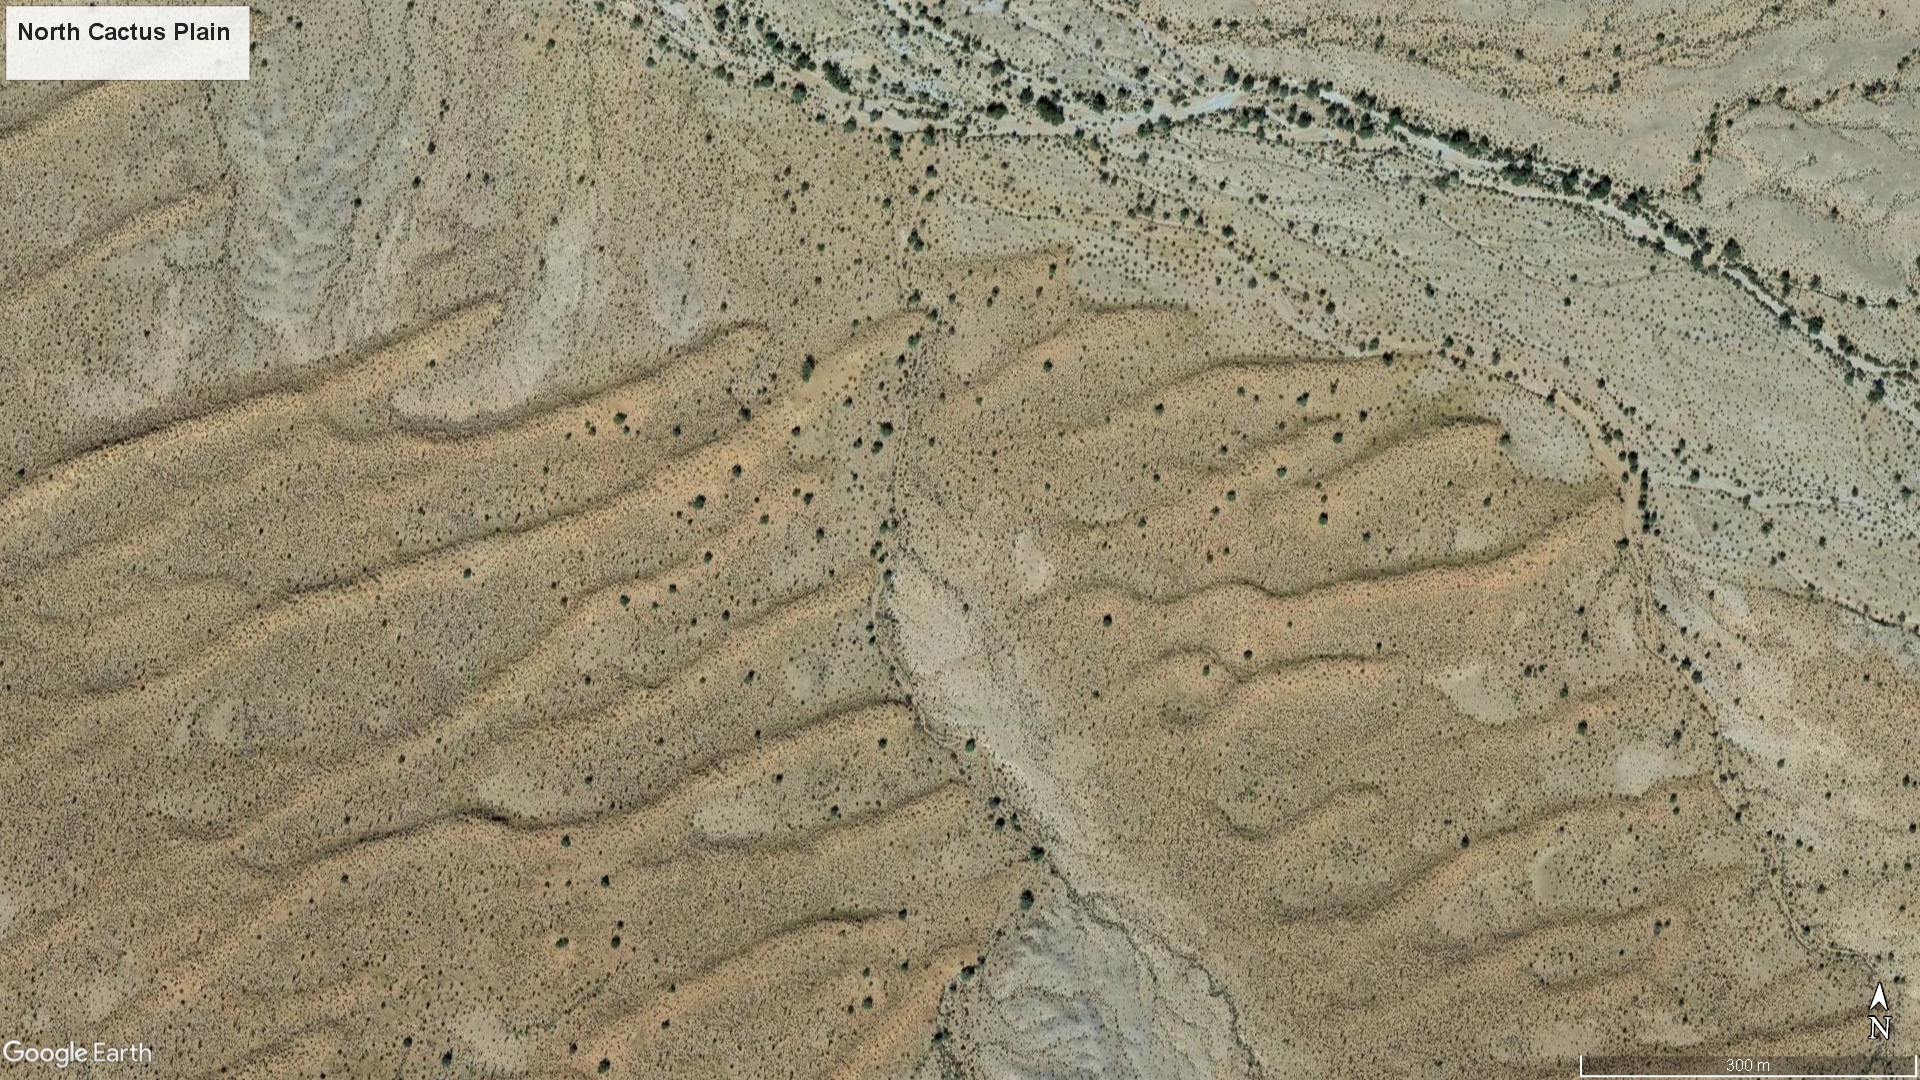 Google Earth image showing partially vegetated dunes